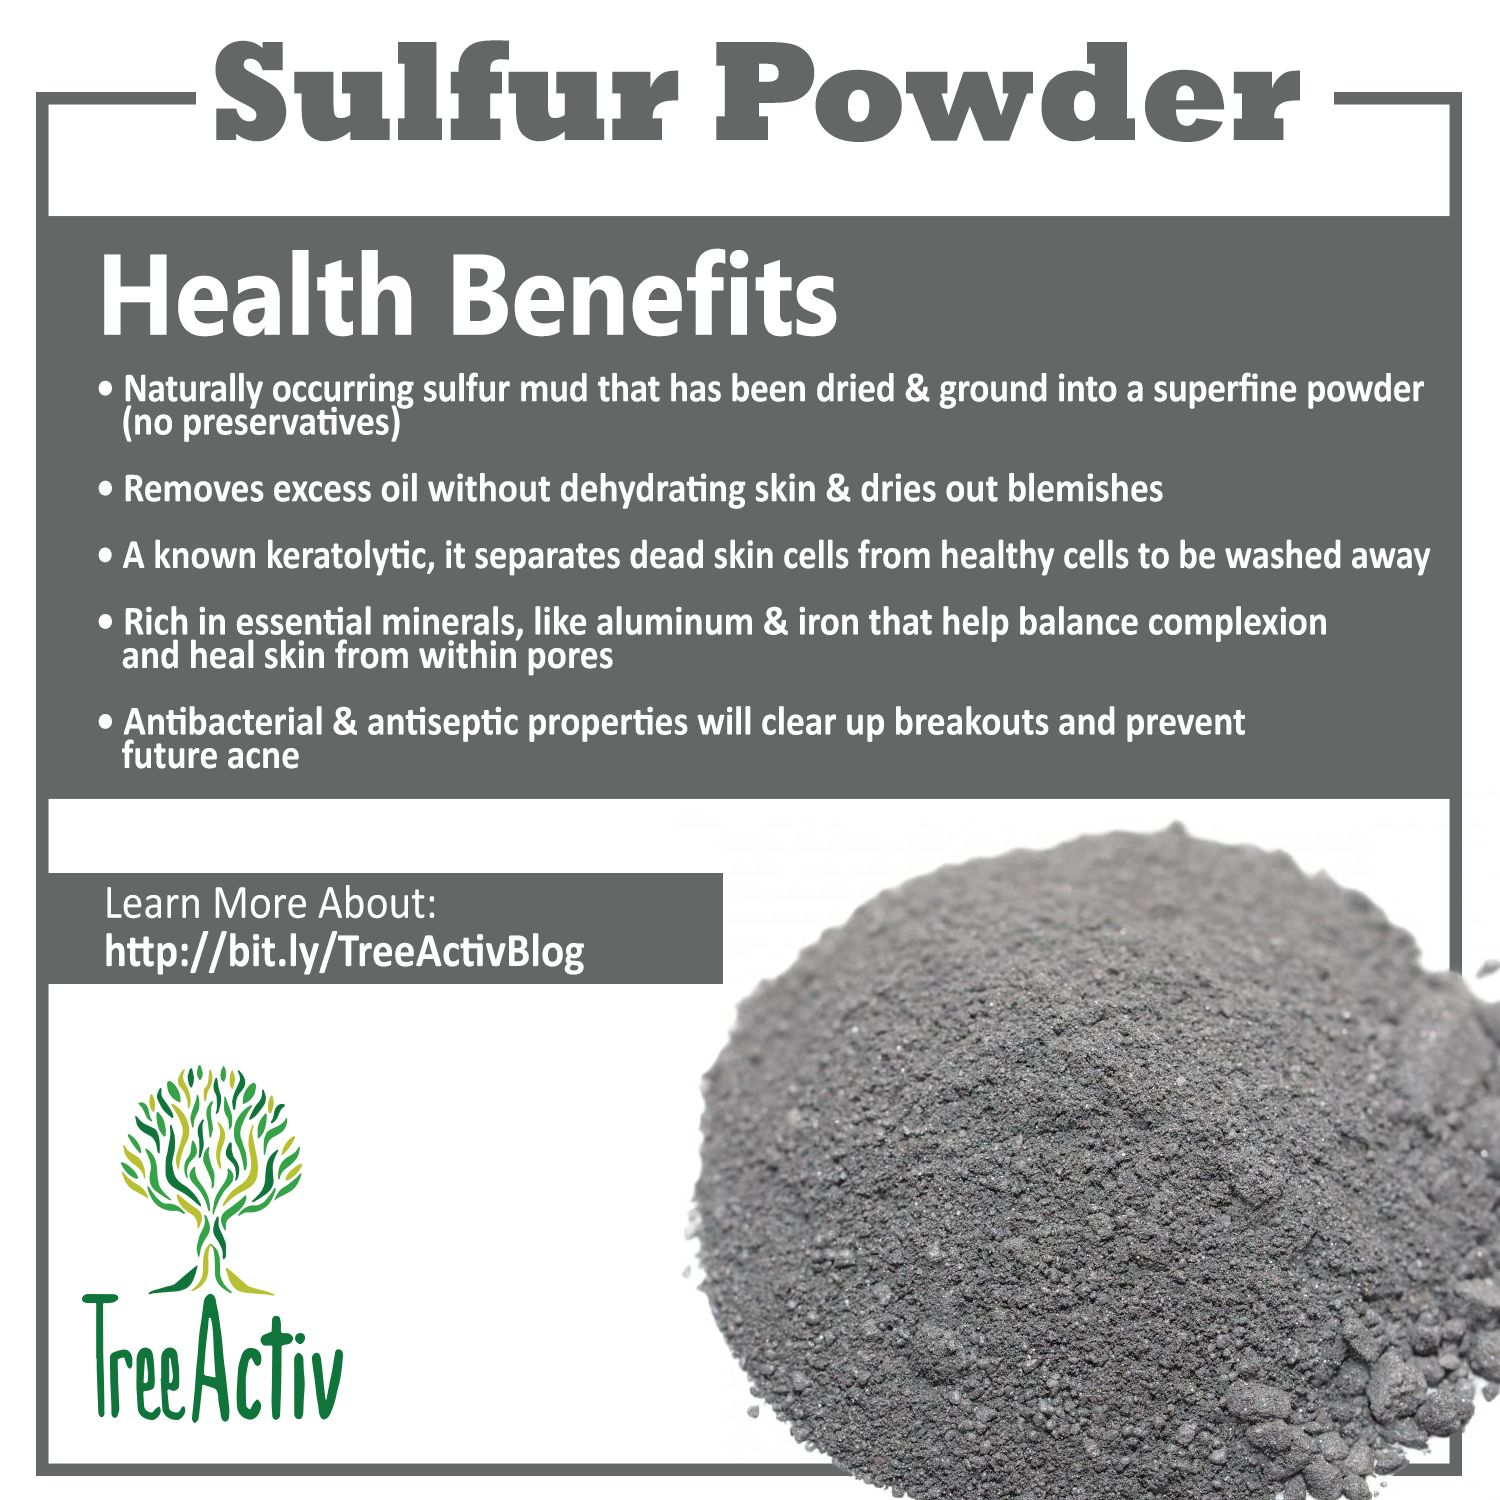 Sulfur Powder For Skin Care in 2019 | The Power Of Natural | Sulphur